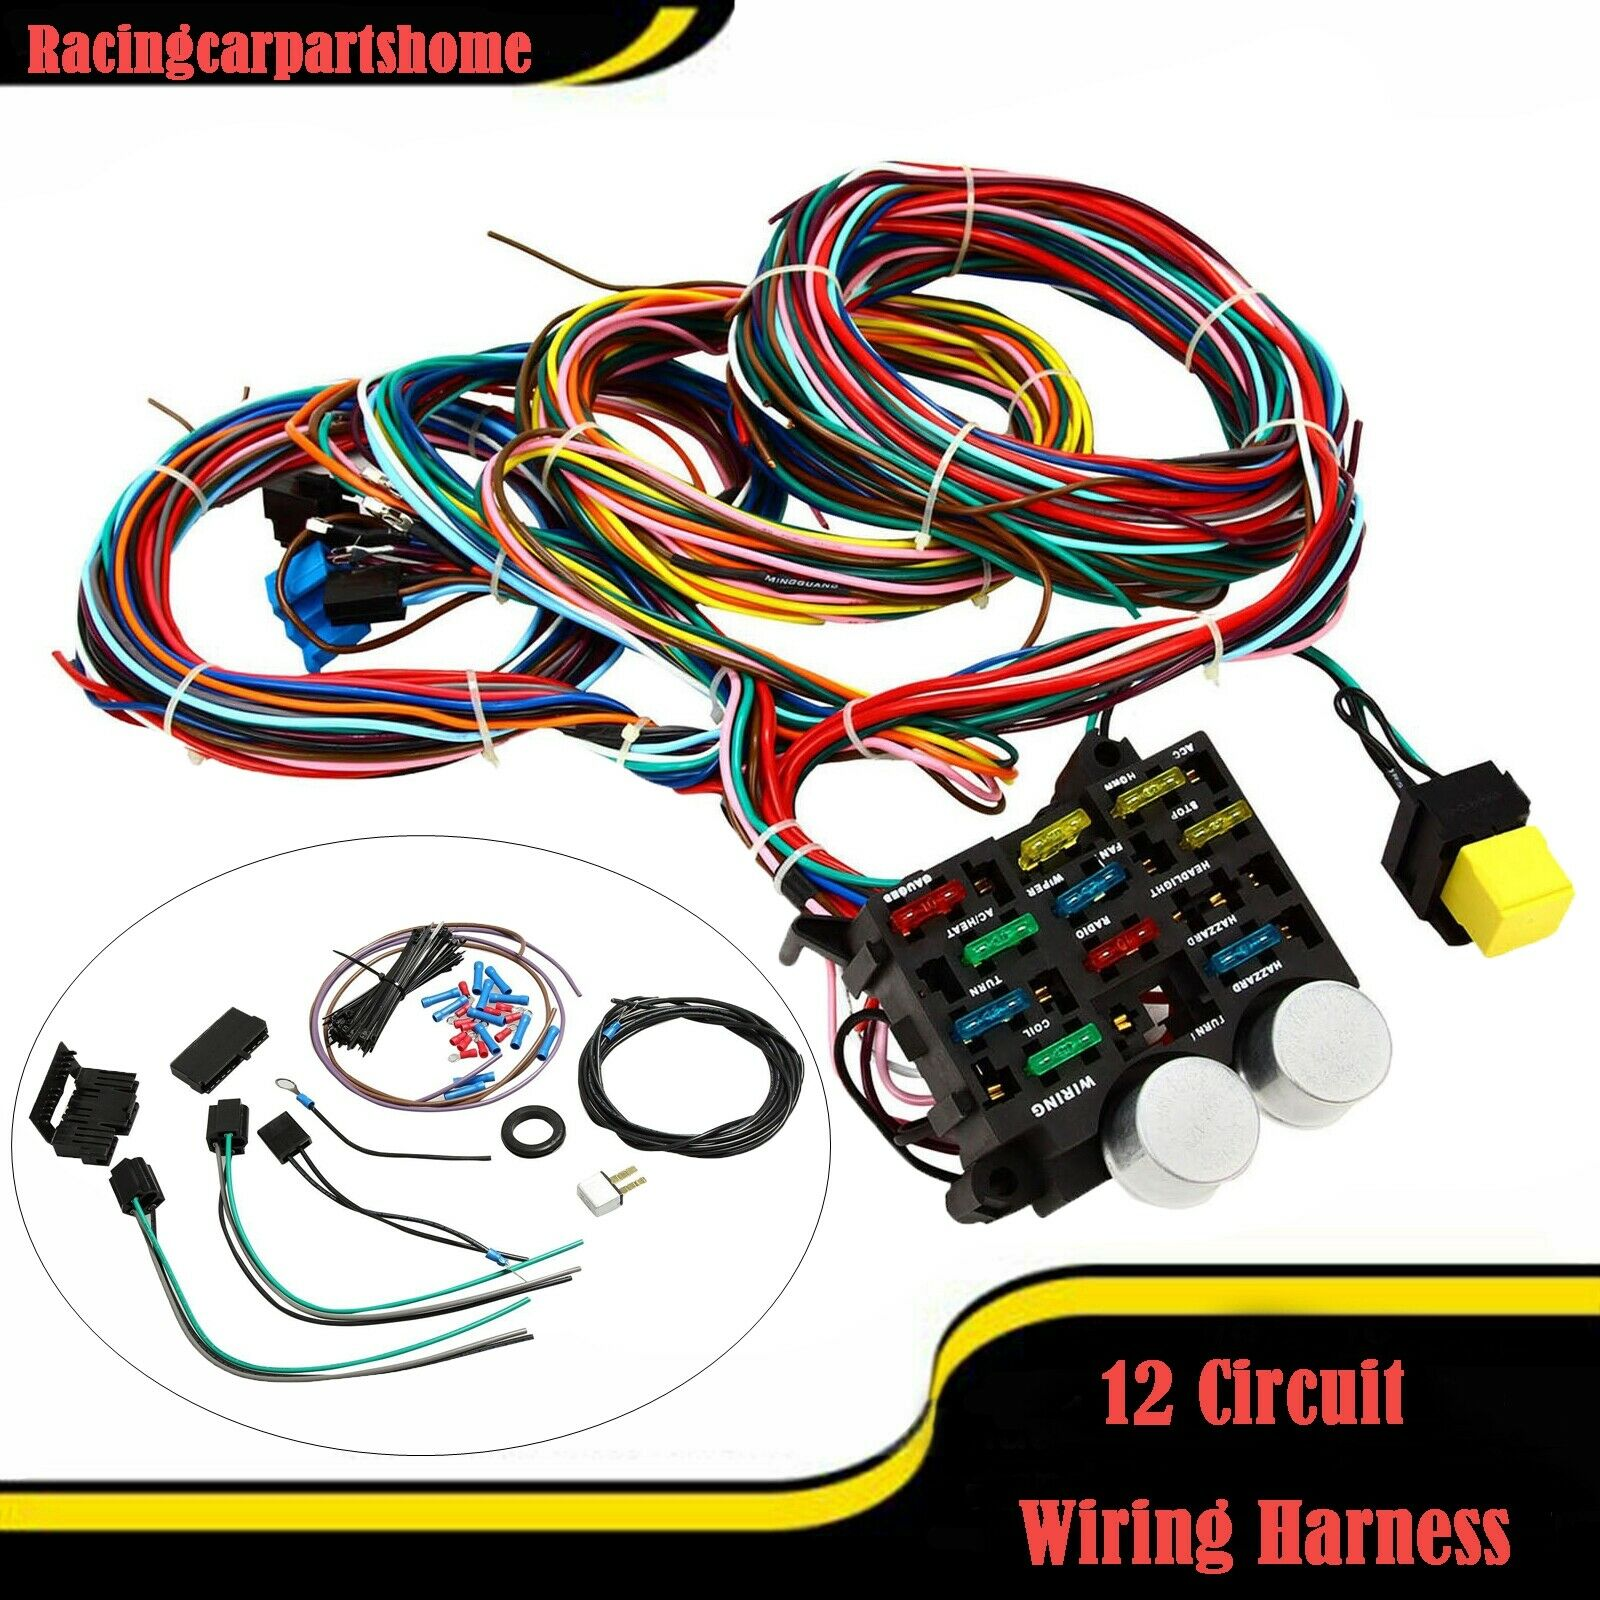 Universal Wire 12 Circuit Hot Rod Wiring Harness For Chevy Mopar Ford Street  1 of 7FREE Shipping See More